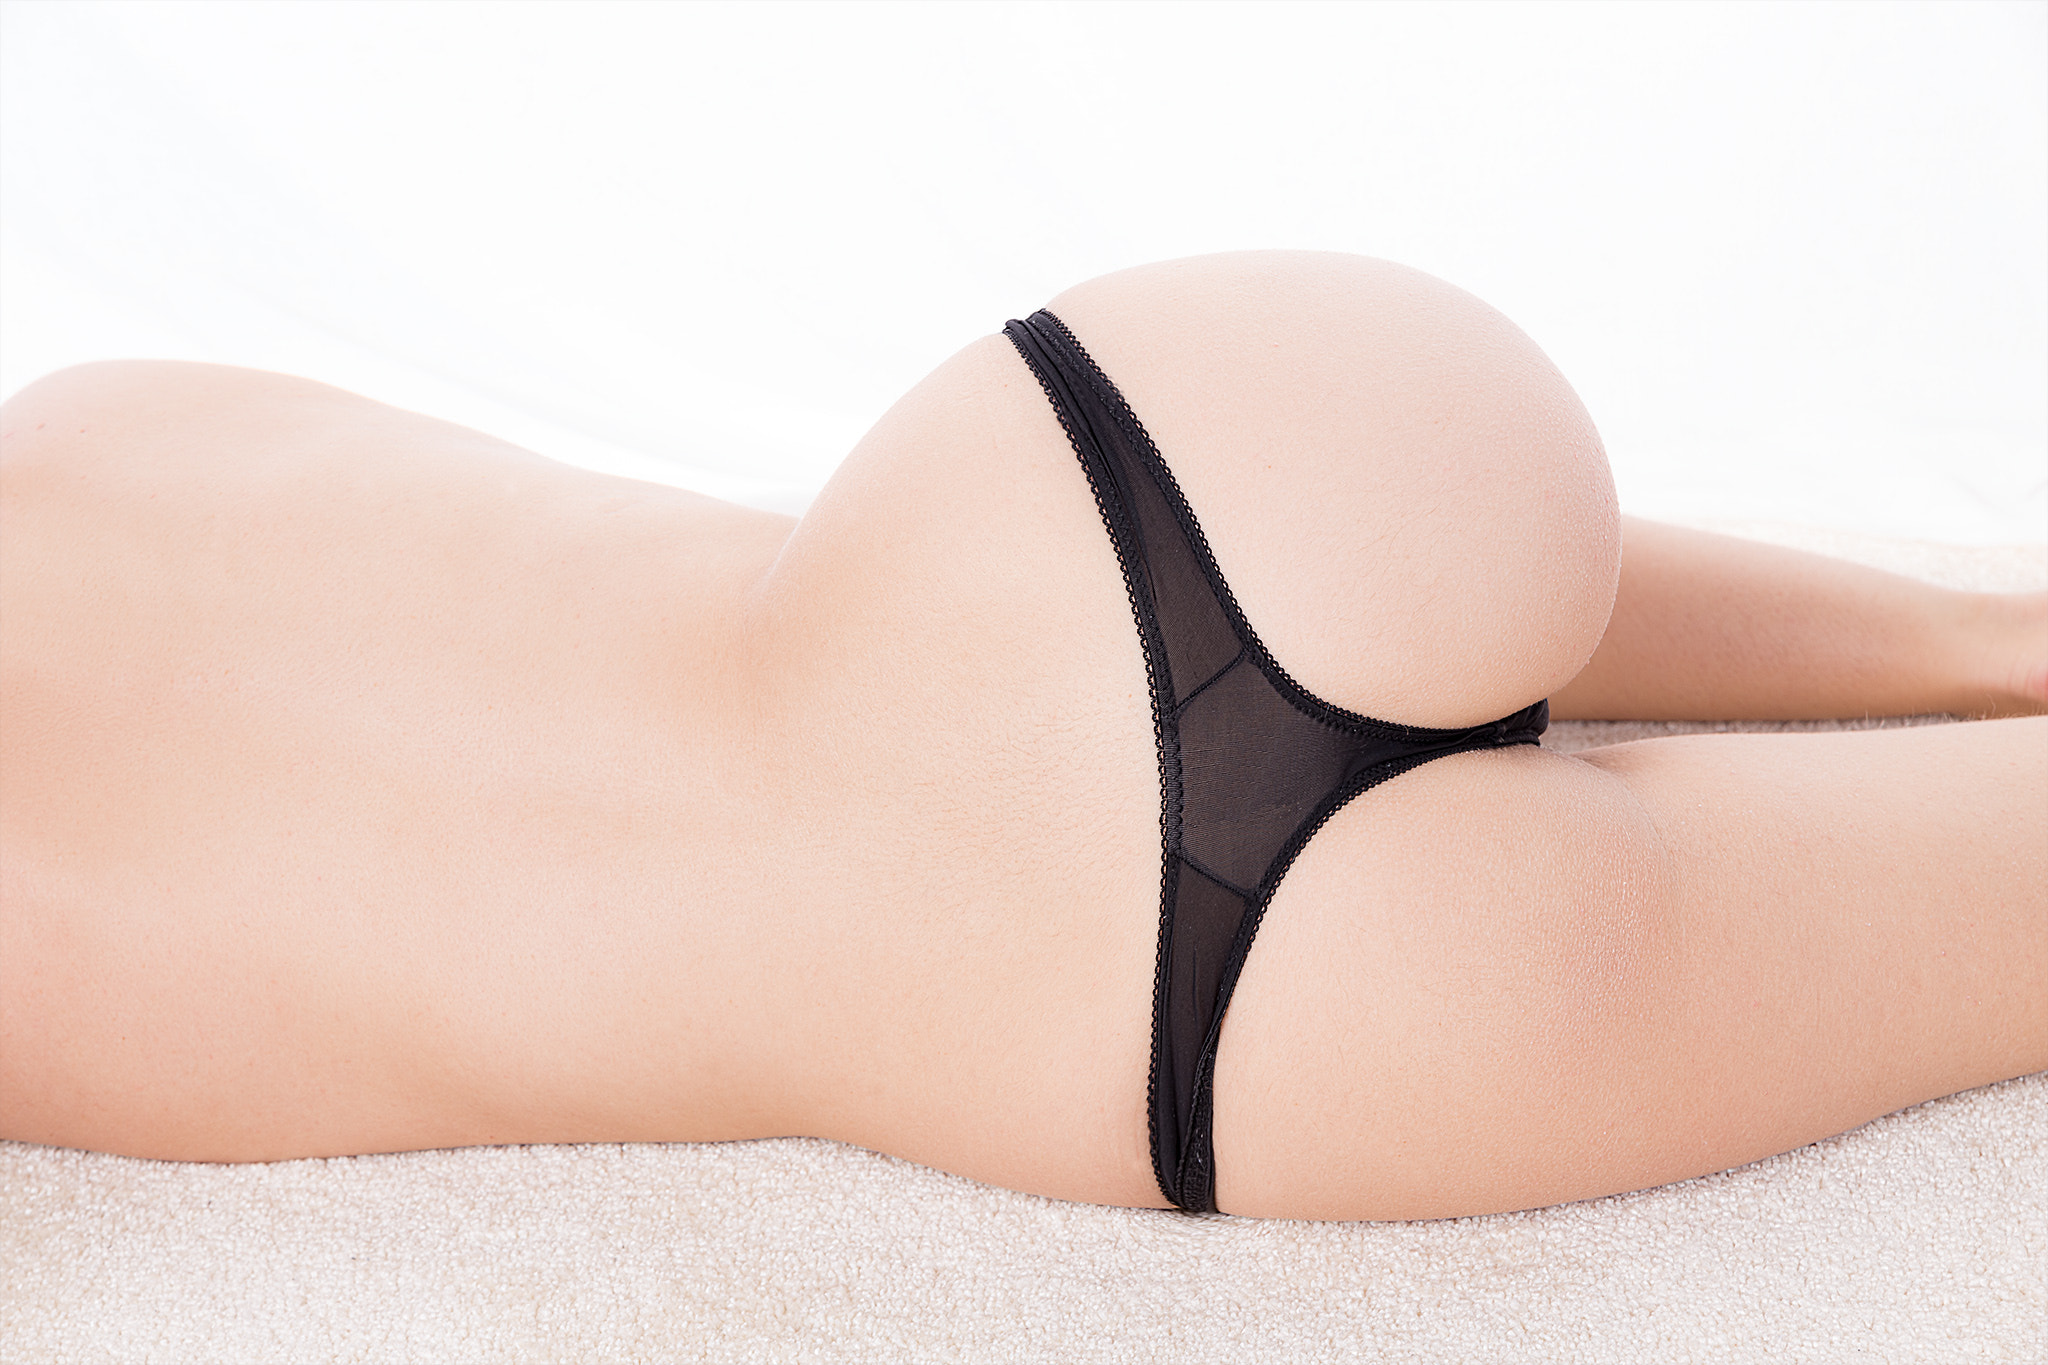 Photograph Bubble Butt by Guenter Stoehr on 500px